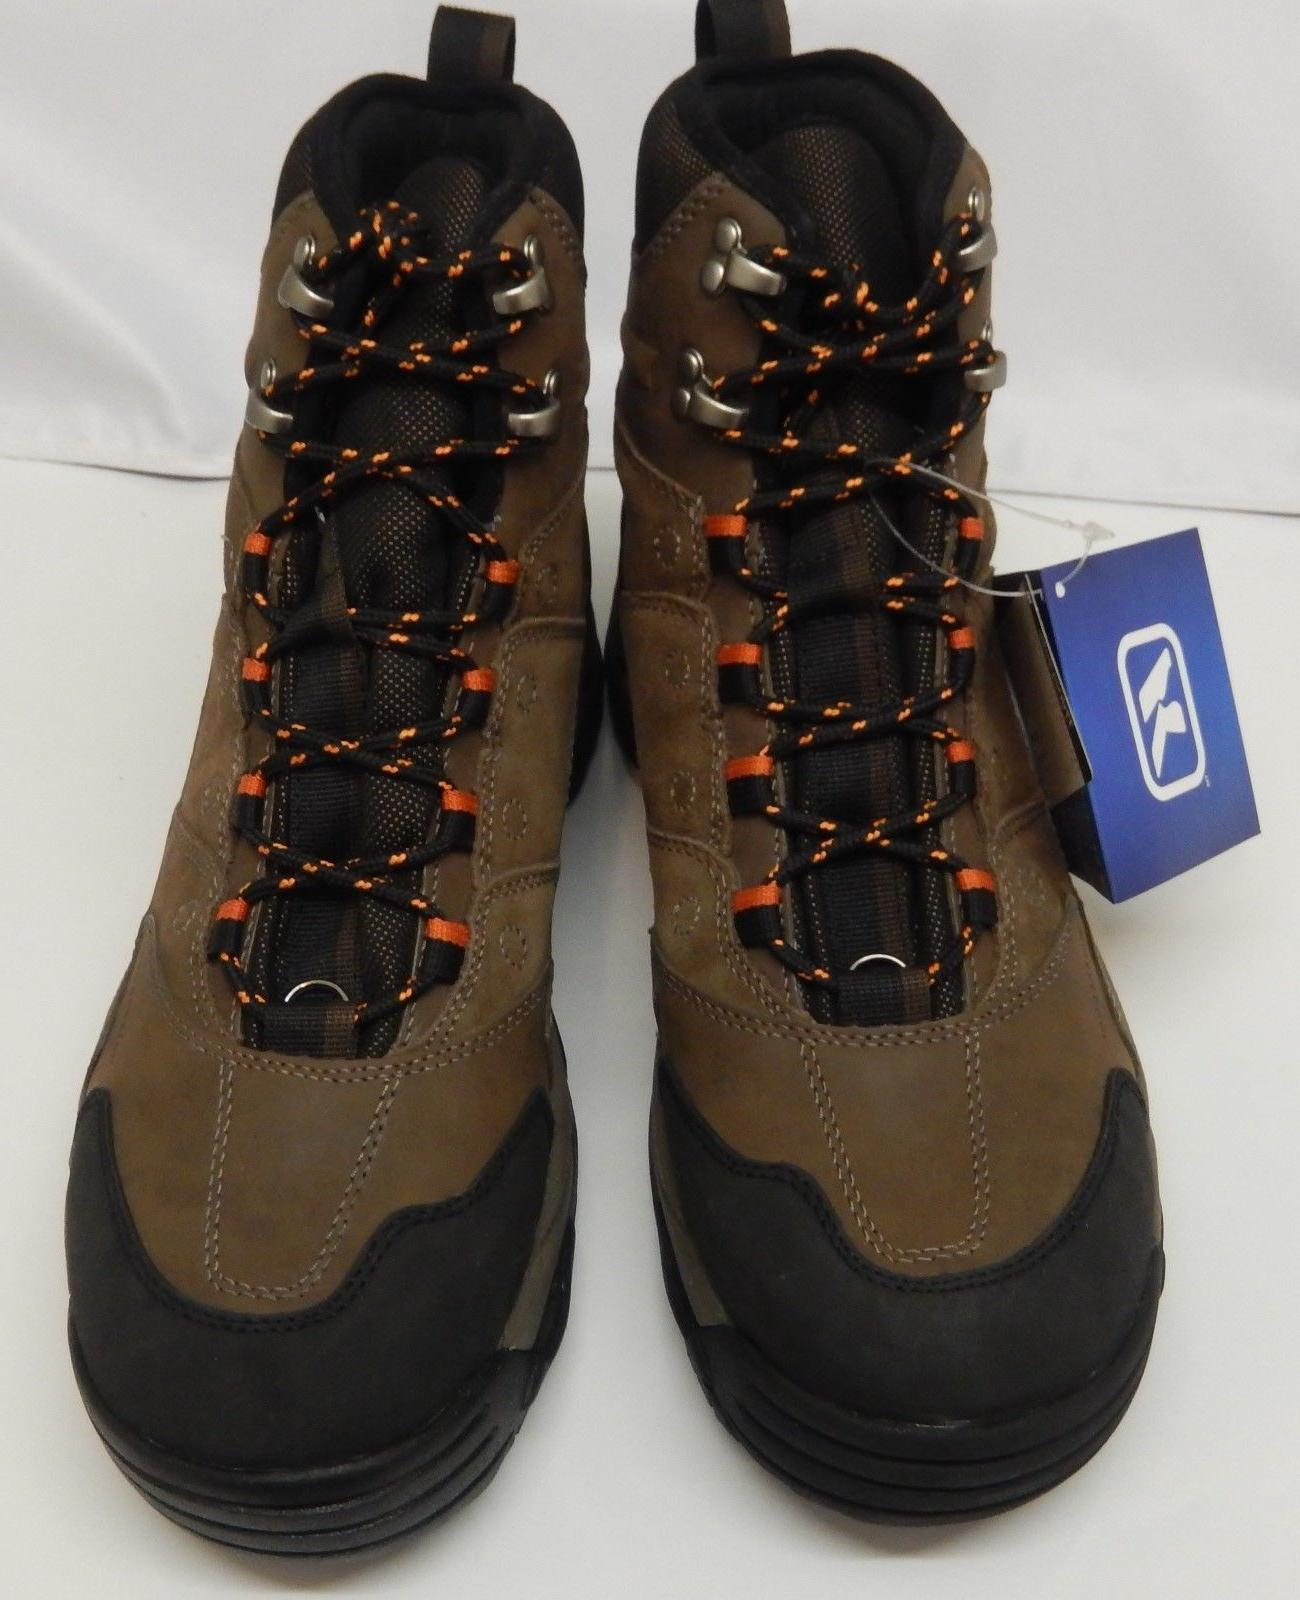 Men's Korkers StormJack Winter Boots Size with box $169 12-1/2